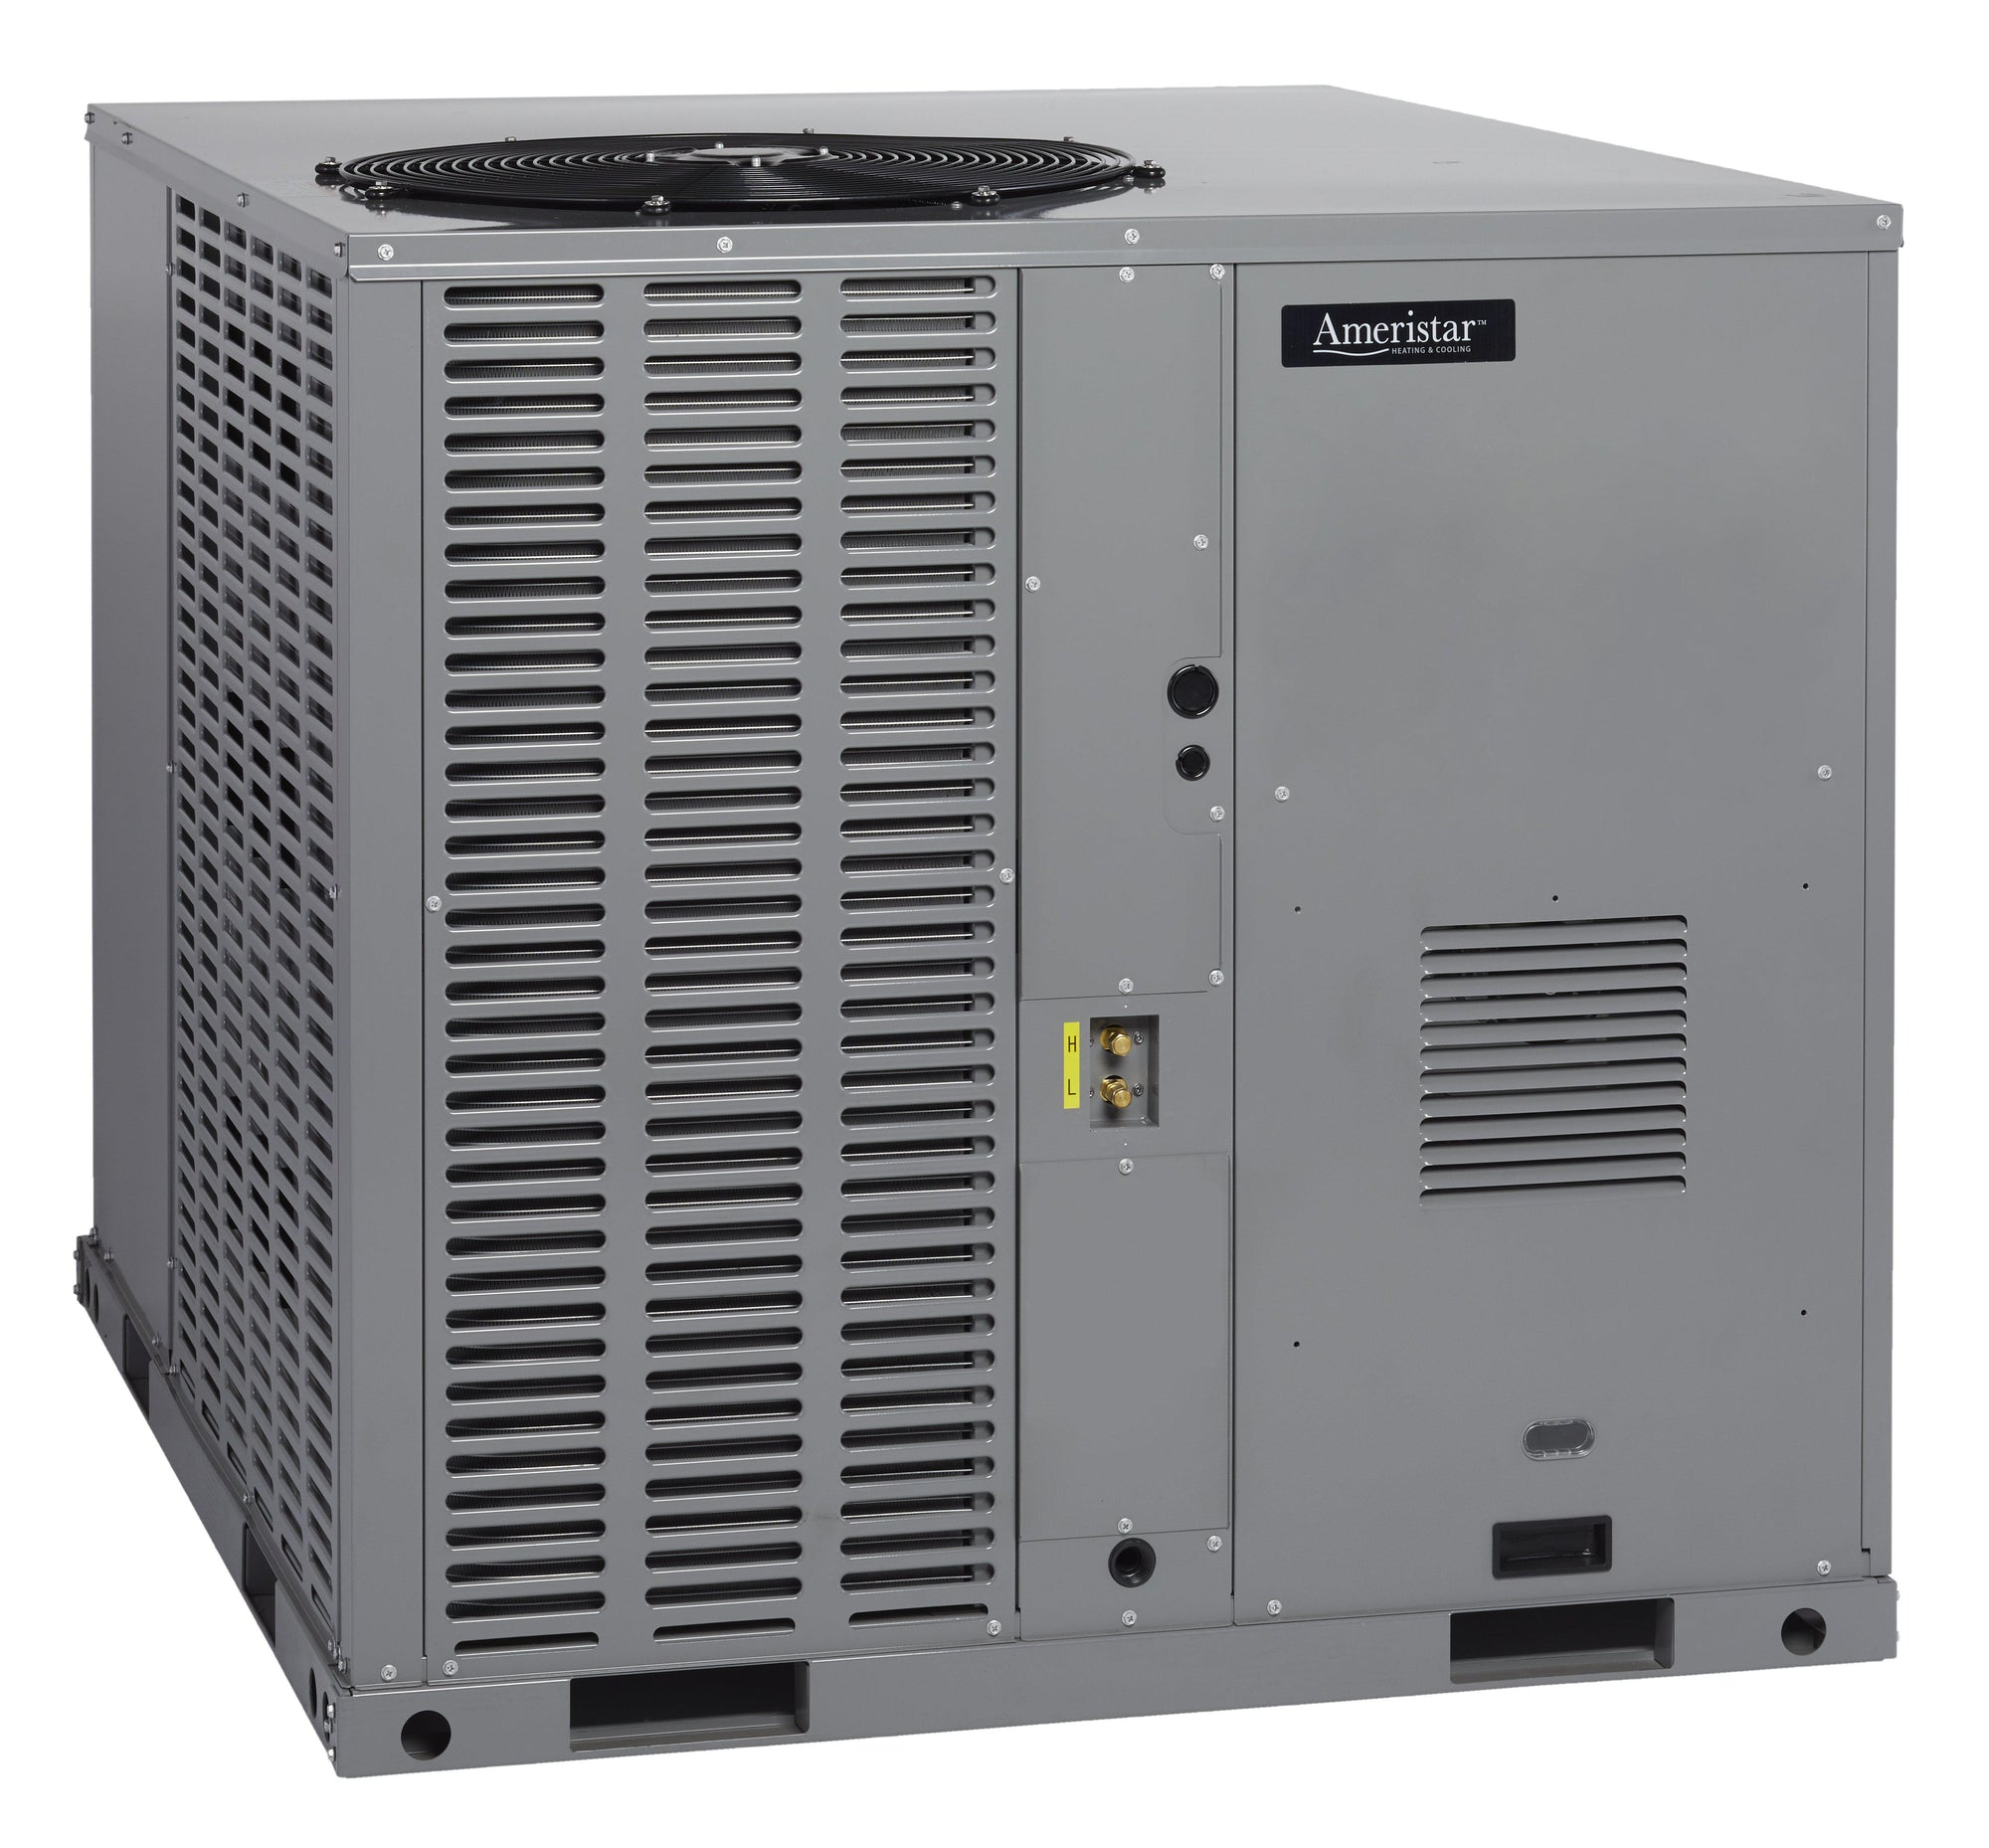 AMERISTAR BY TRANE® M4PG4060A1090A 5 TON 14 SEER GAS PACKAGE UNIT